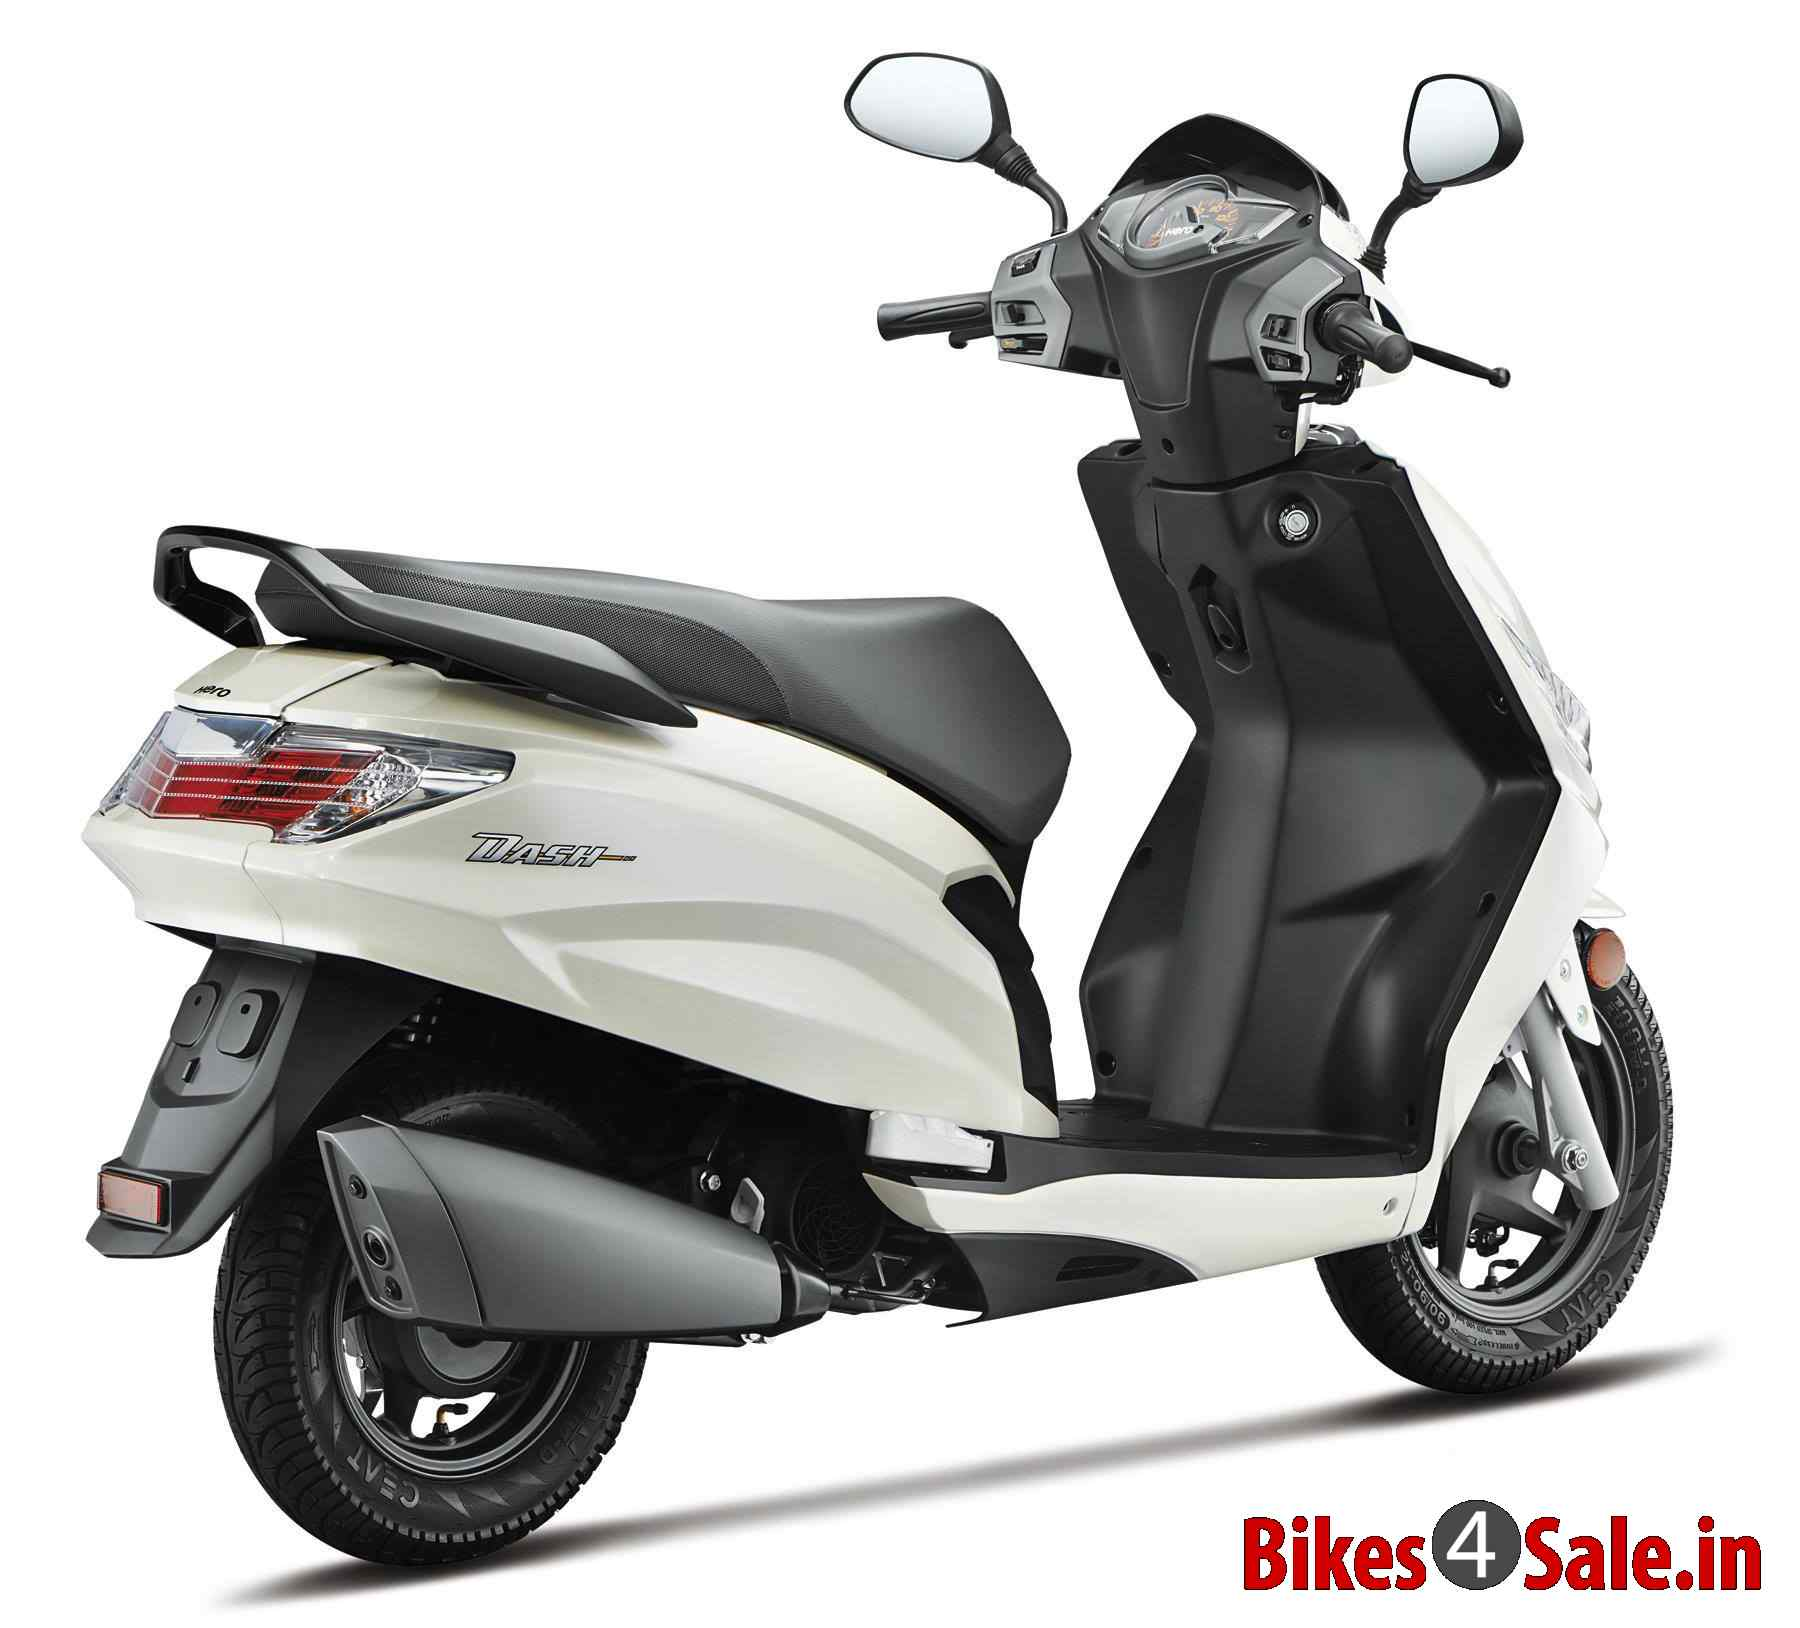 Electric Scooter With Seat >> Hero Dash price, specs, mileage, colours, photos and ...